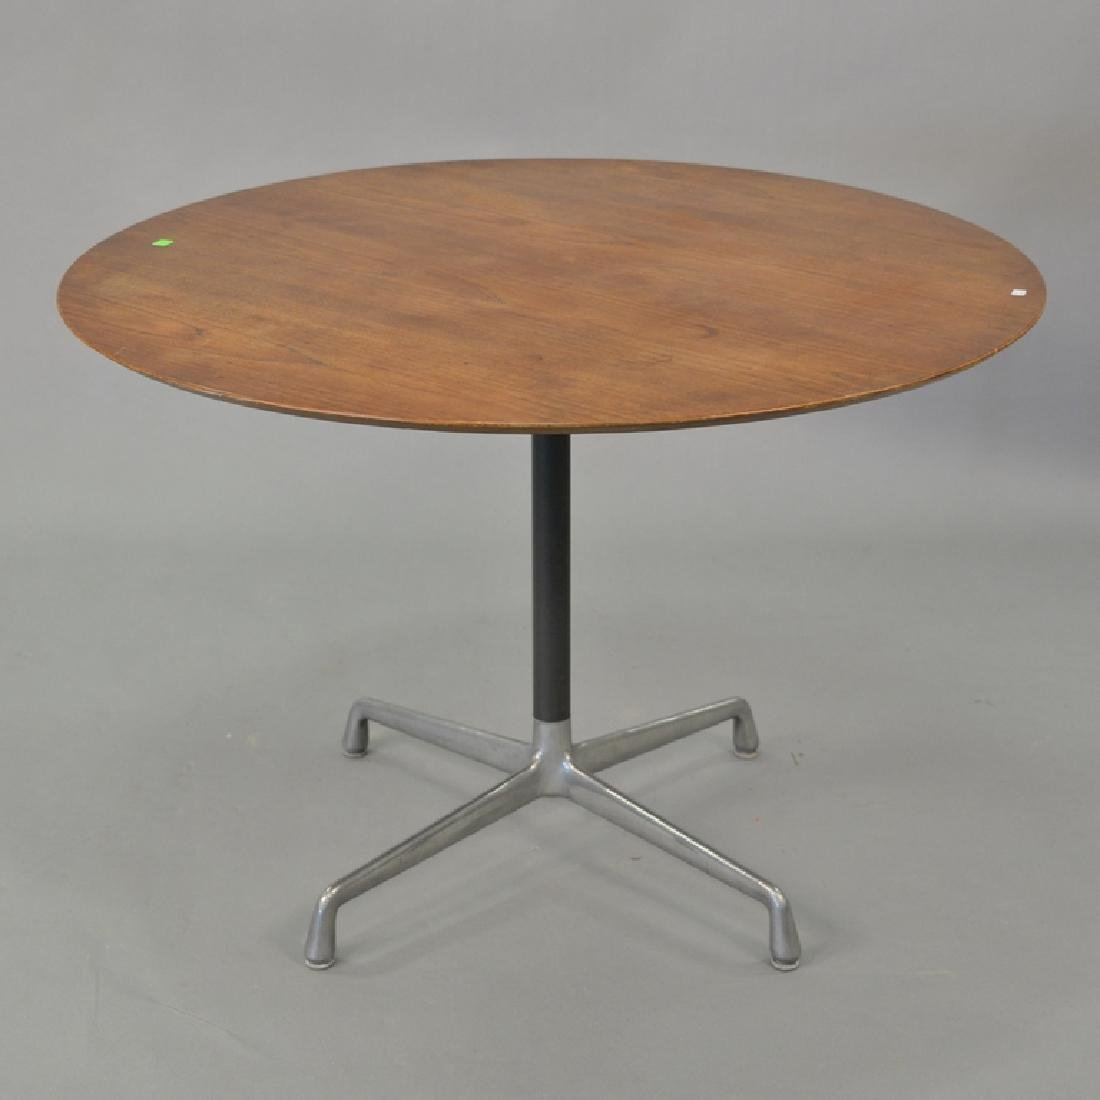 Eames walnut round top table. ht. 28in., dia. 41 1/2in.